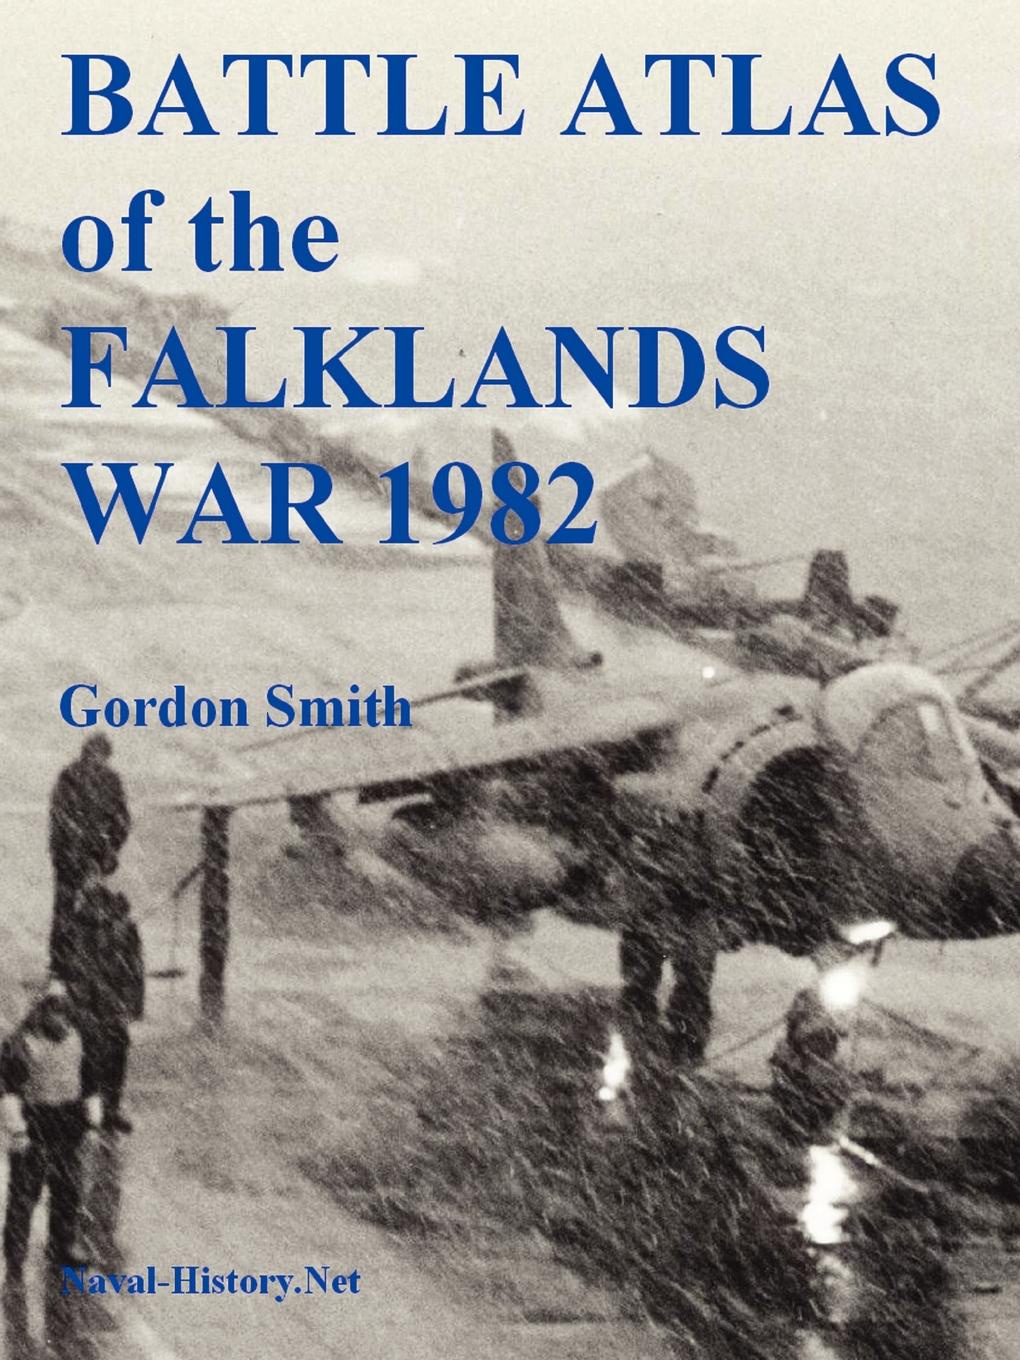 Gordon Smith Battle Atlas of the Falklands War 1982 by Land, Sea and Air mccabe william gordon ballads of battle and bravery